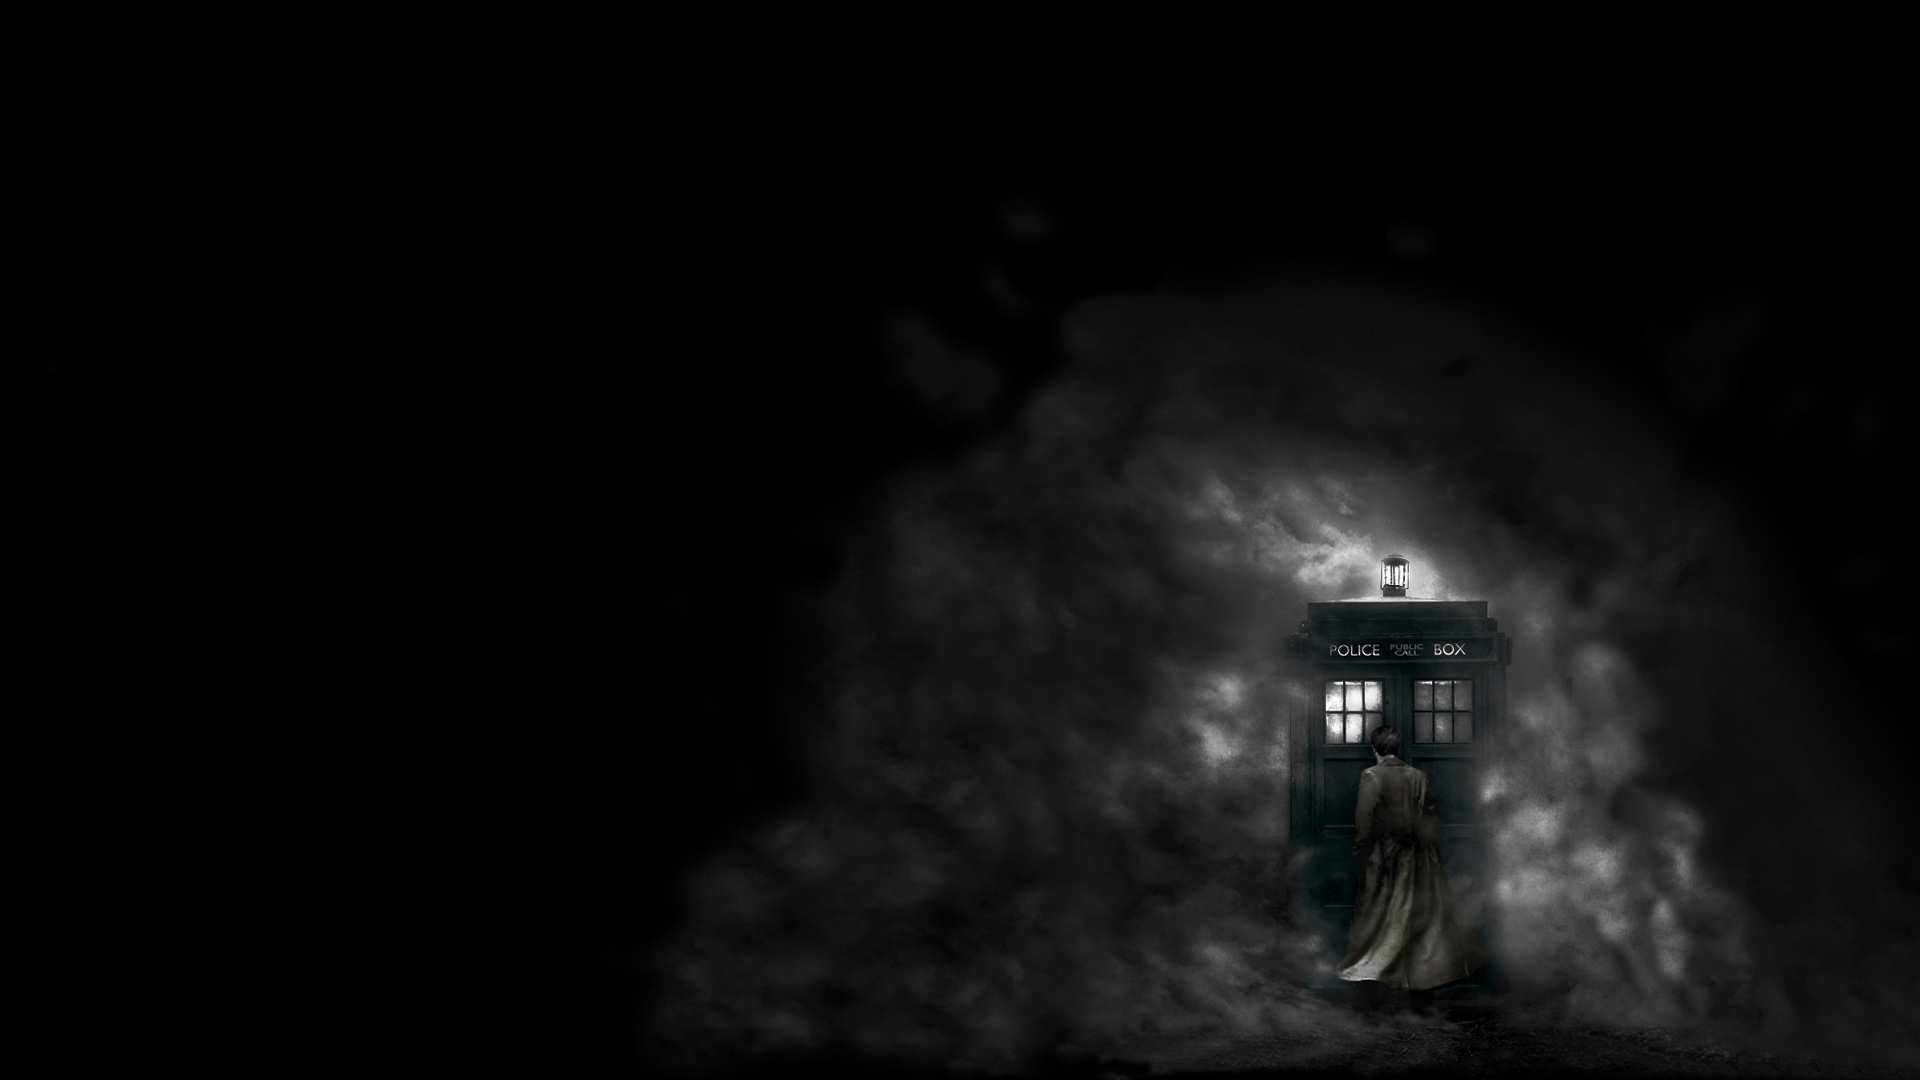 50 cool doctor who wallpapers on wallpapersafari - Dr who wallpaper ...